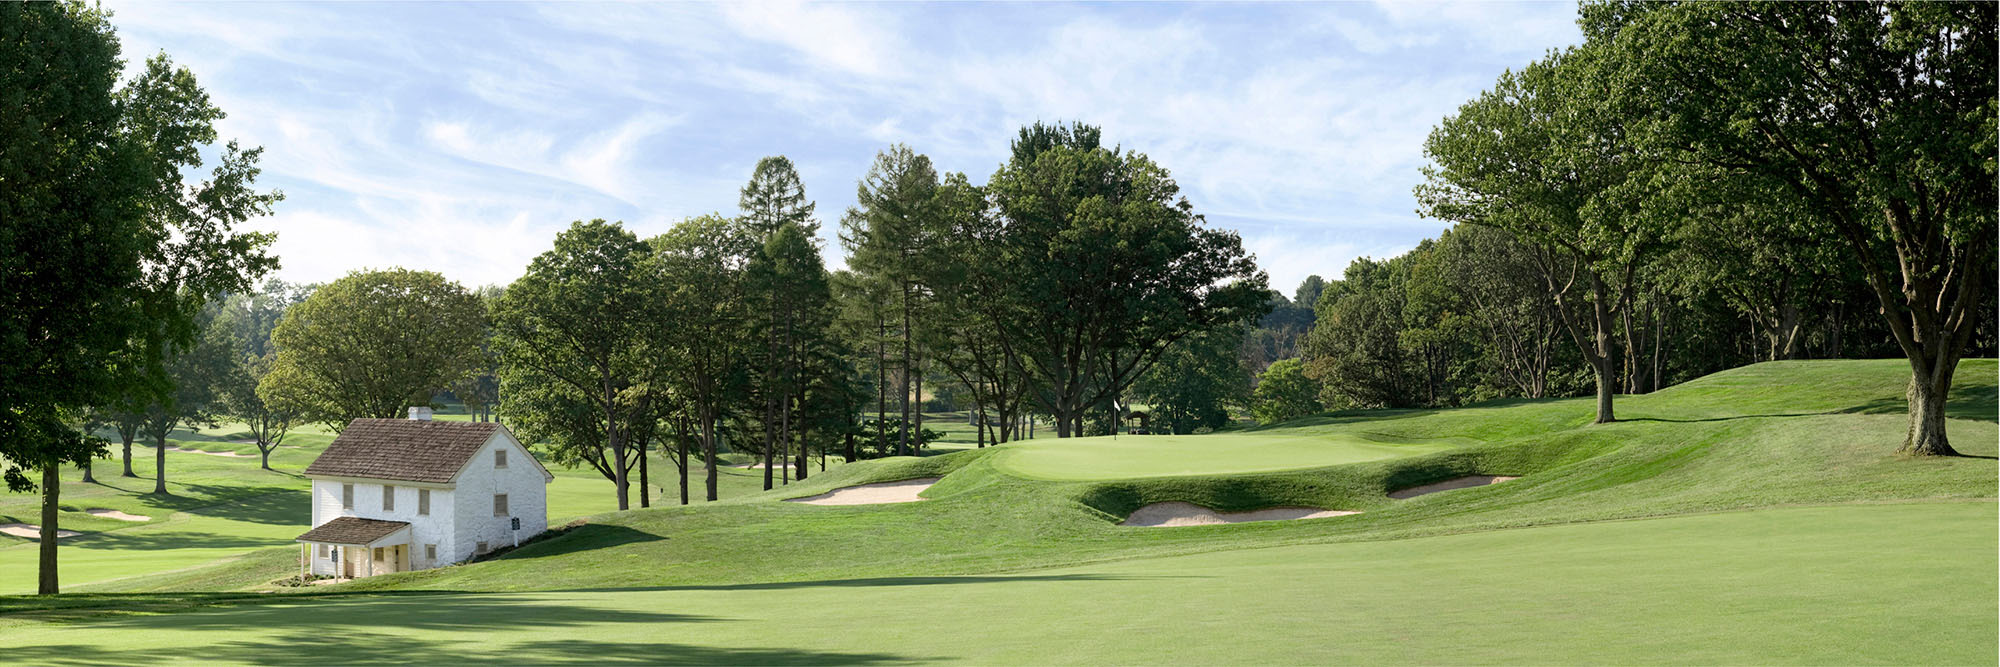 Golf Course Image - Aronimink No. 7